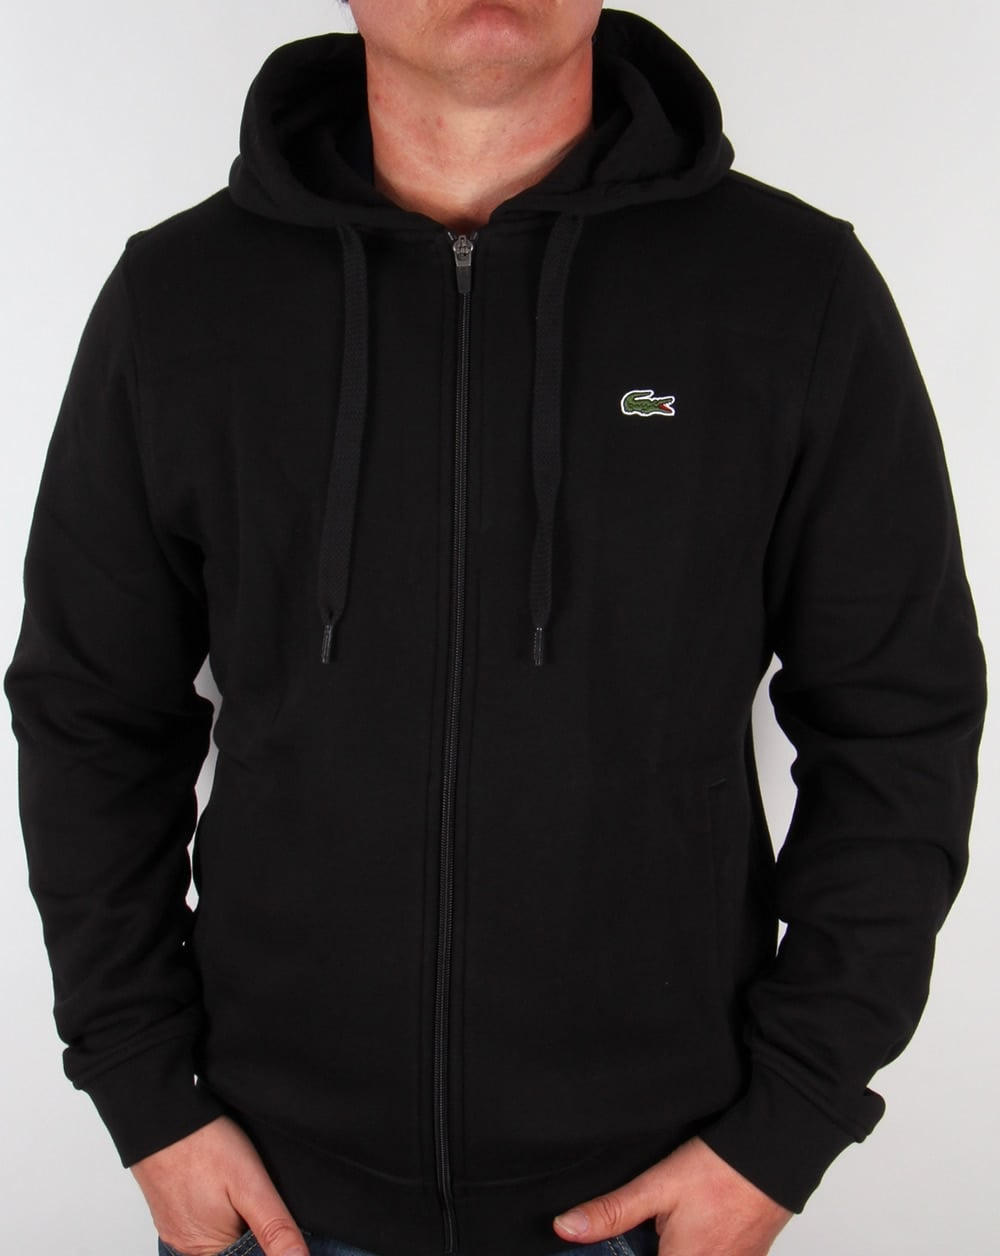 Buy the latest black zip sweatshirt cheap shop fashion style with free shipping, and check out our daily updated new arrival black zip sweatshirt at fluctuatin.gq